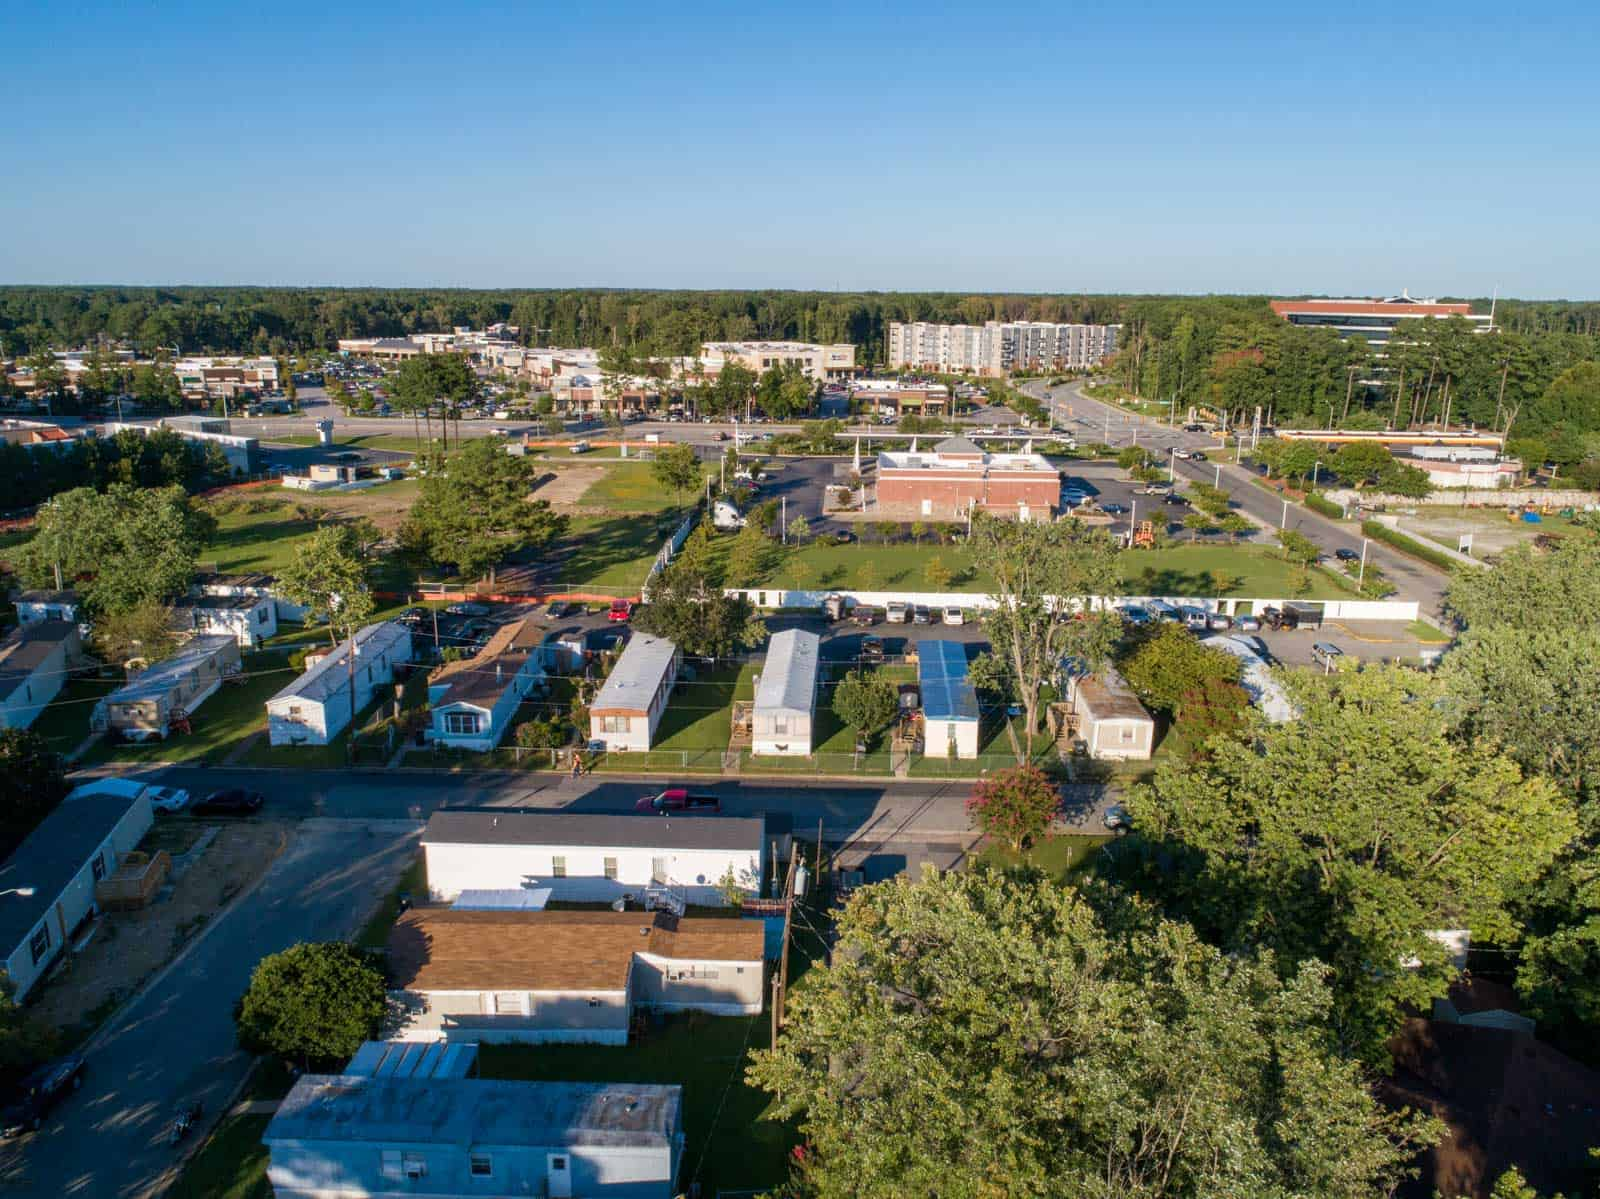 aerial drone photo of mobile home living community in Newport News, VA